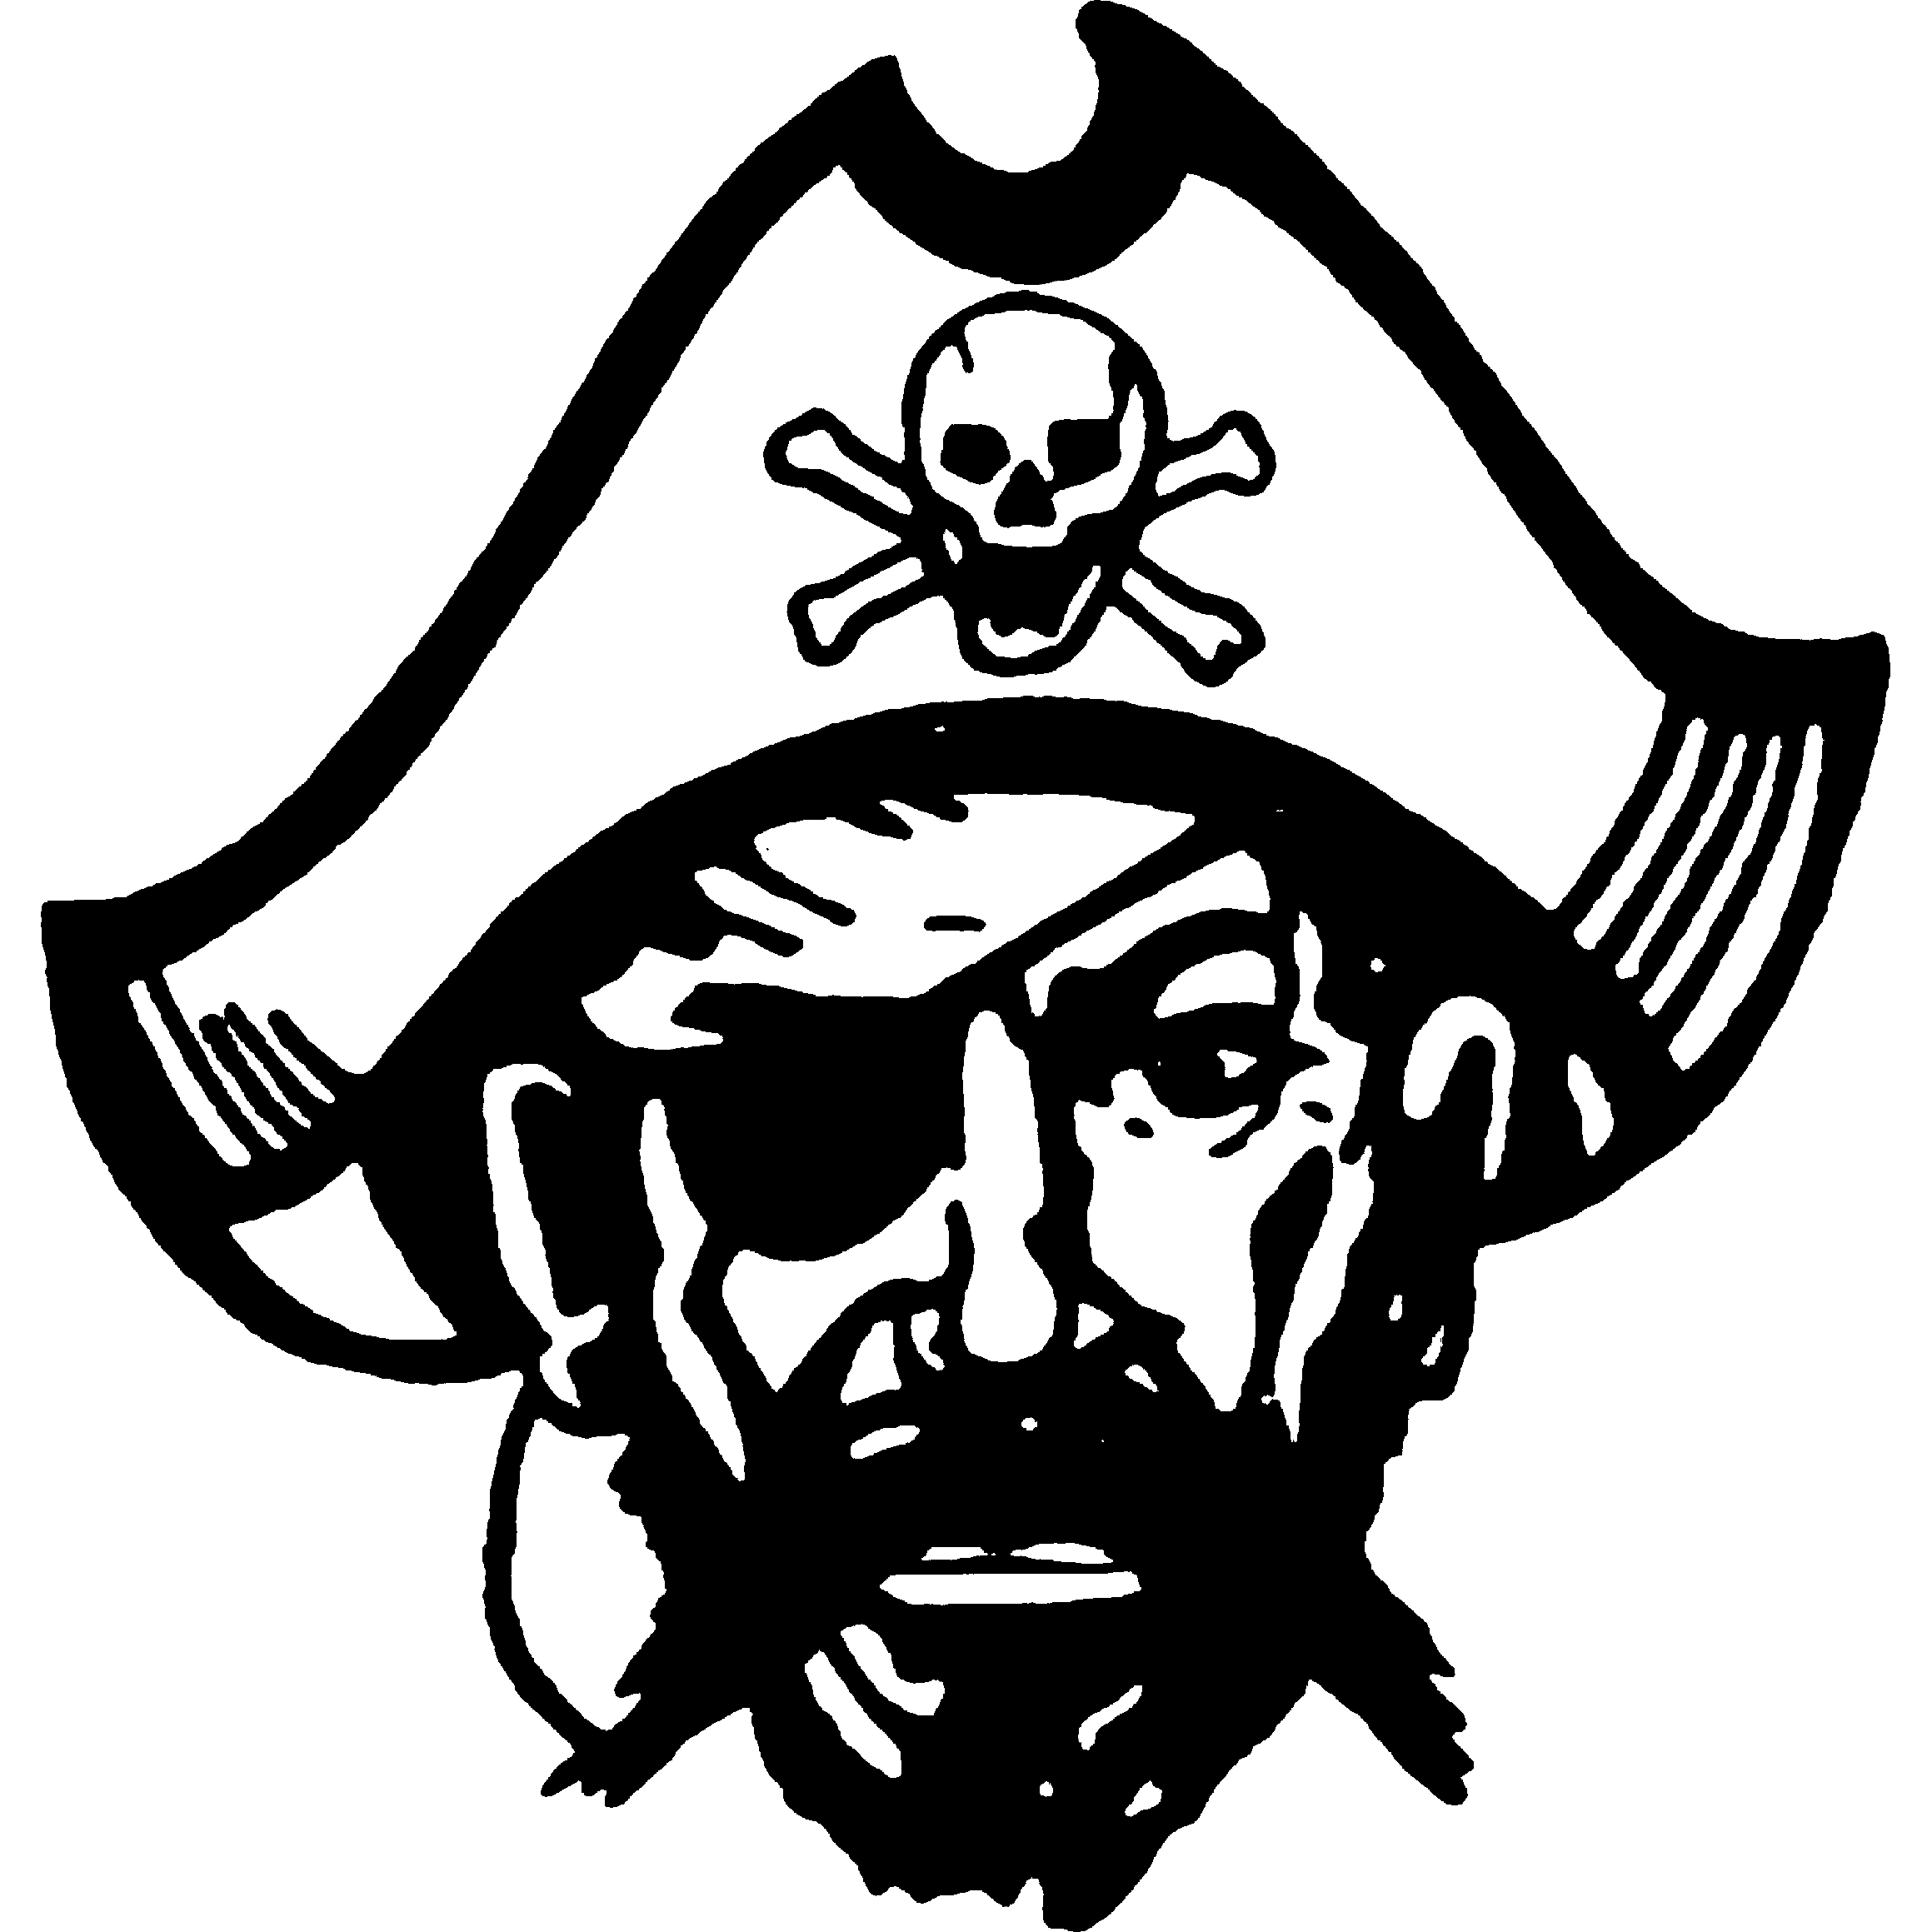 School community clipart picture black and white download Home - Greensburg Jr. High School picture black and white download